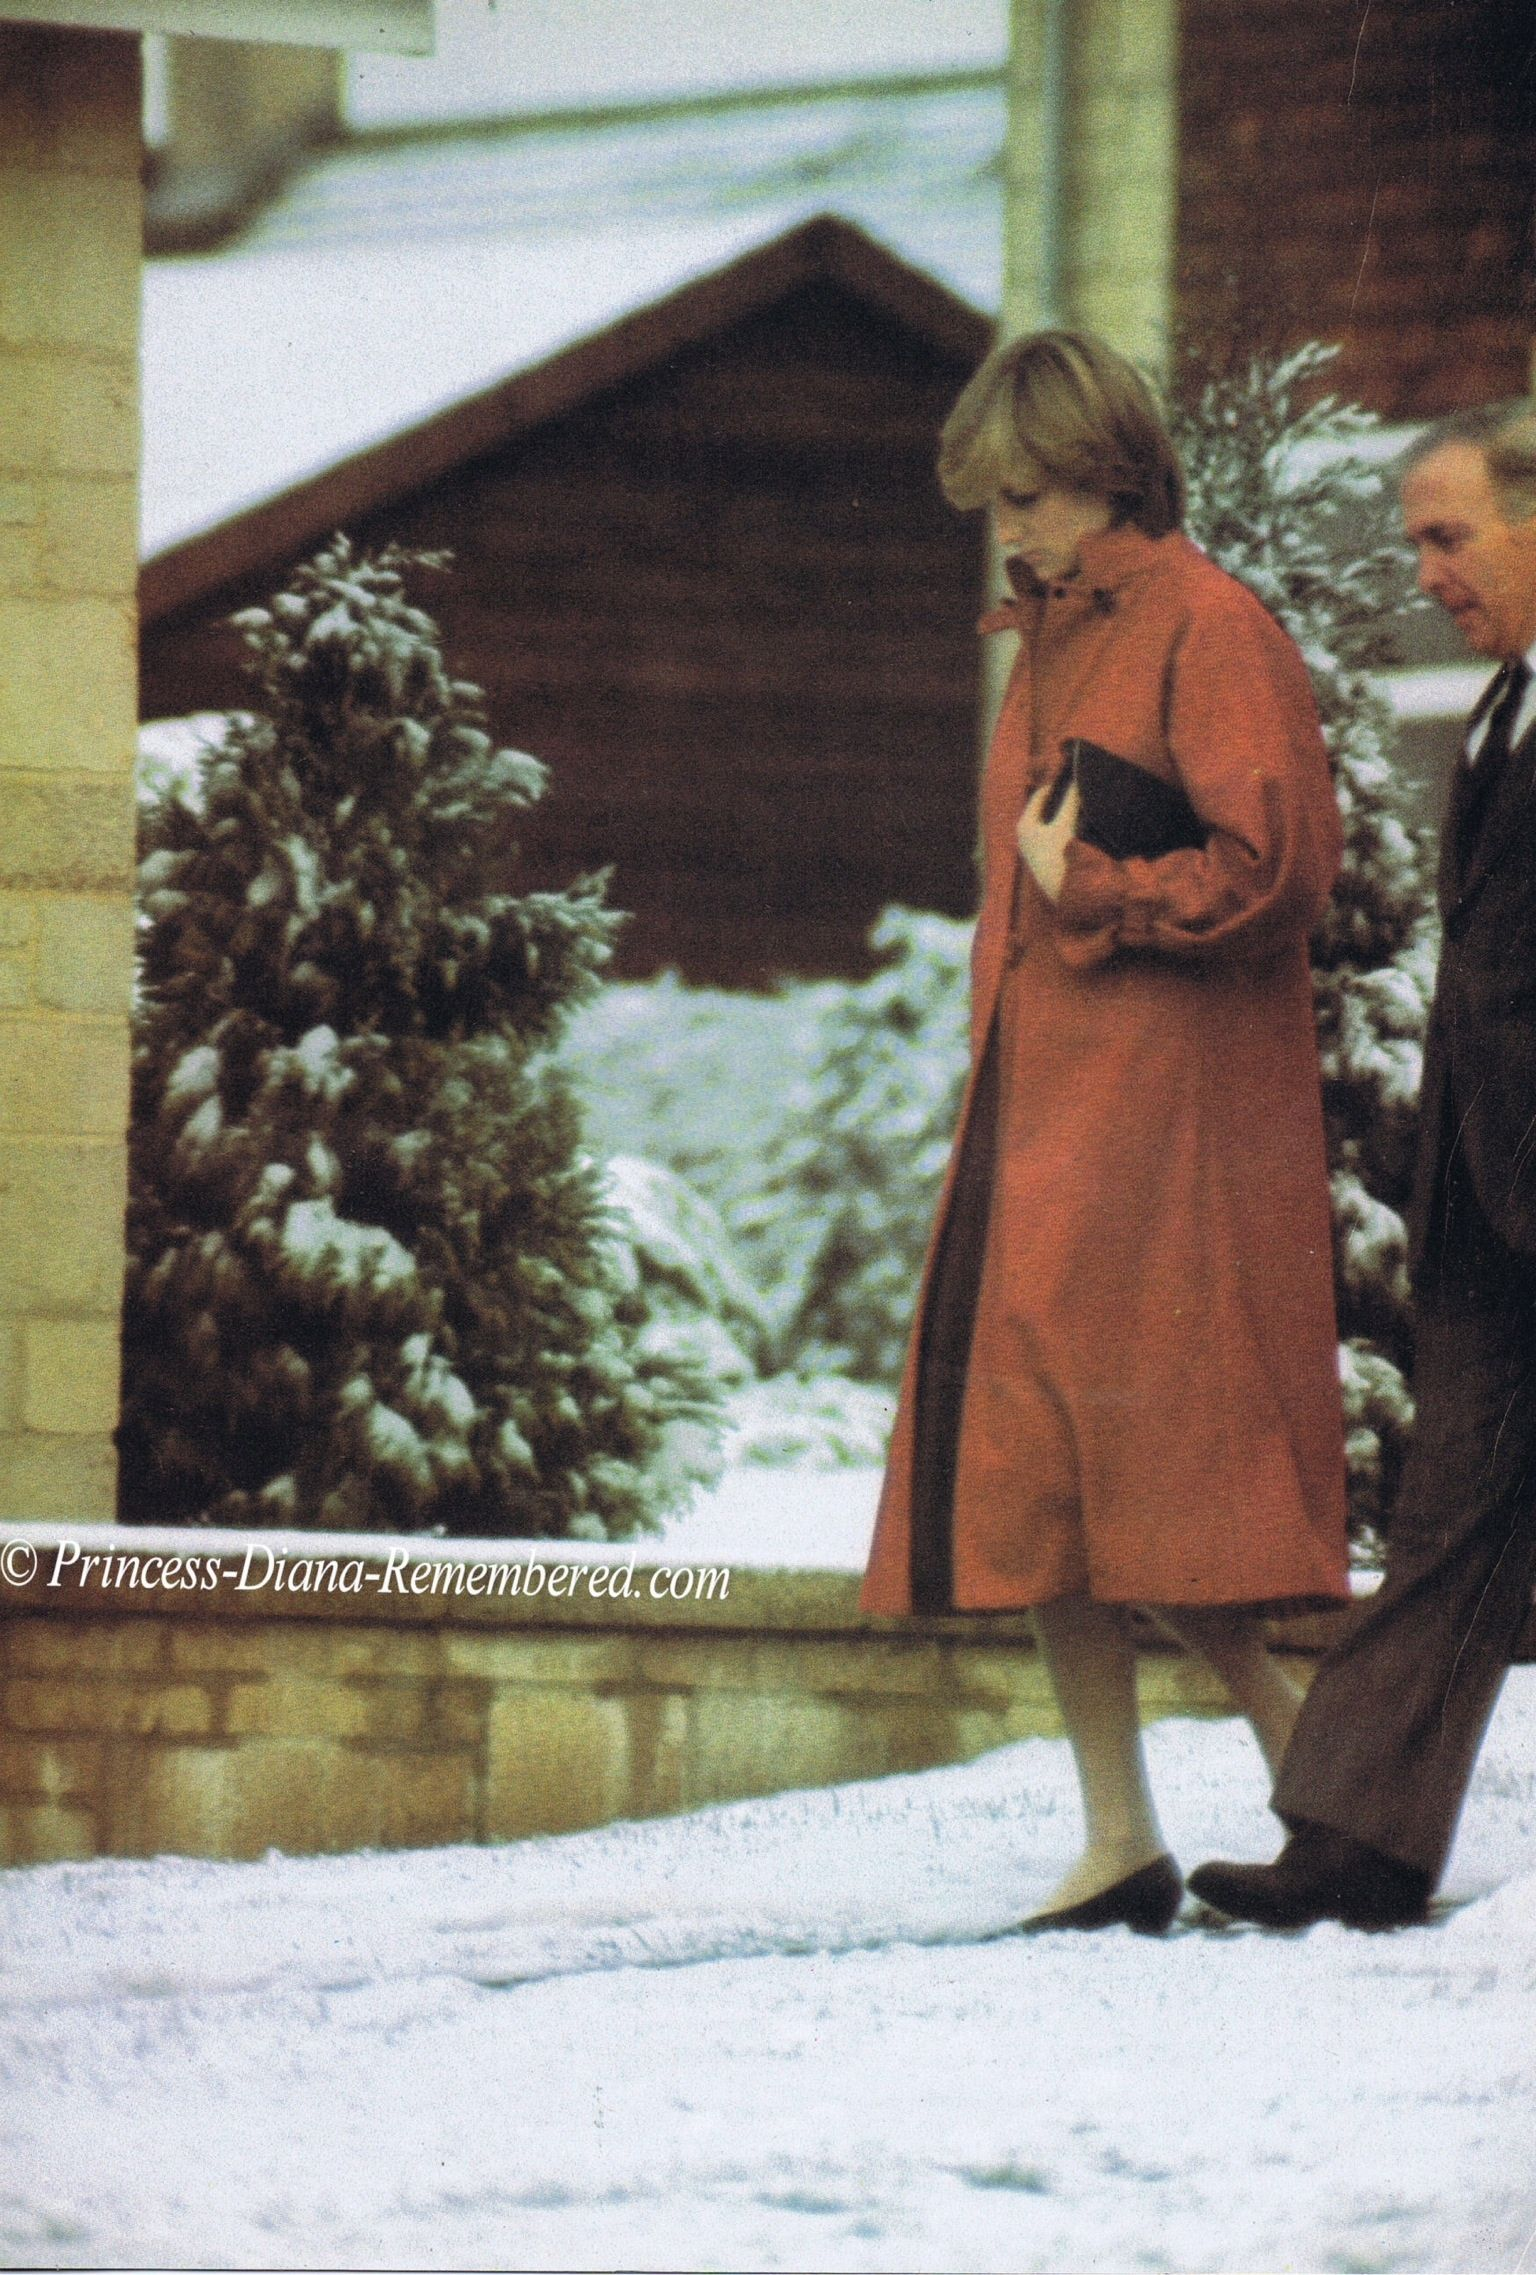 December 8, 1981: Princess Diana visiting St Mary's church of England Primary school in Tetbury.